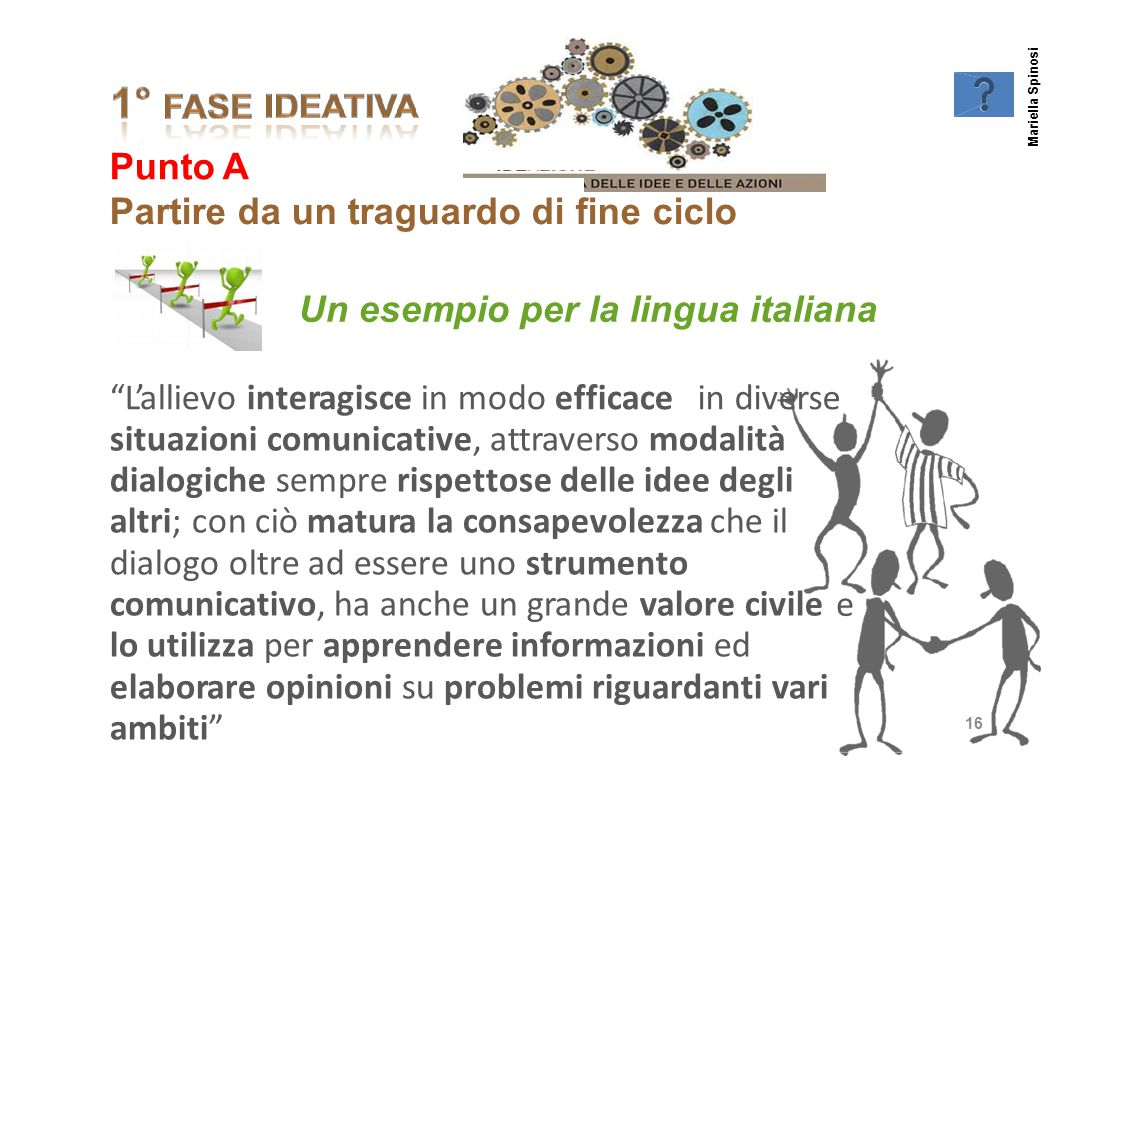 L'allievo interagisce in modo efficace in diverse